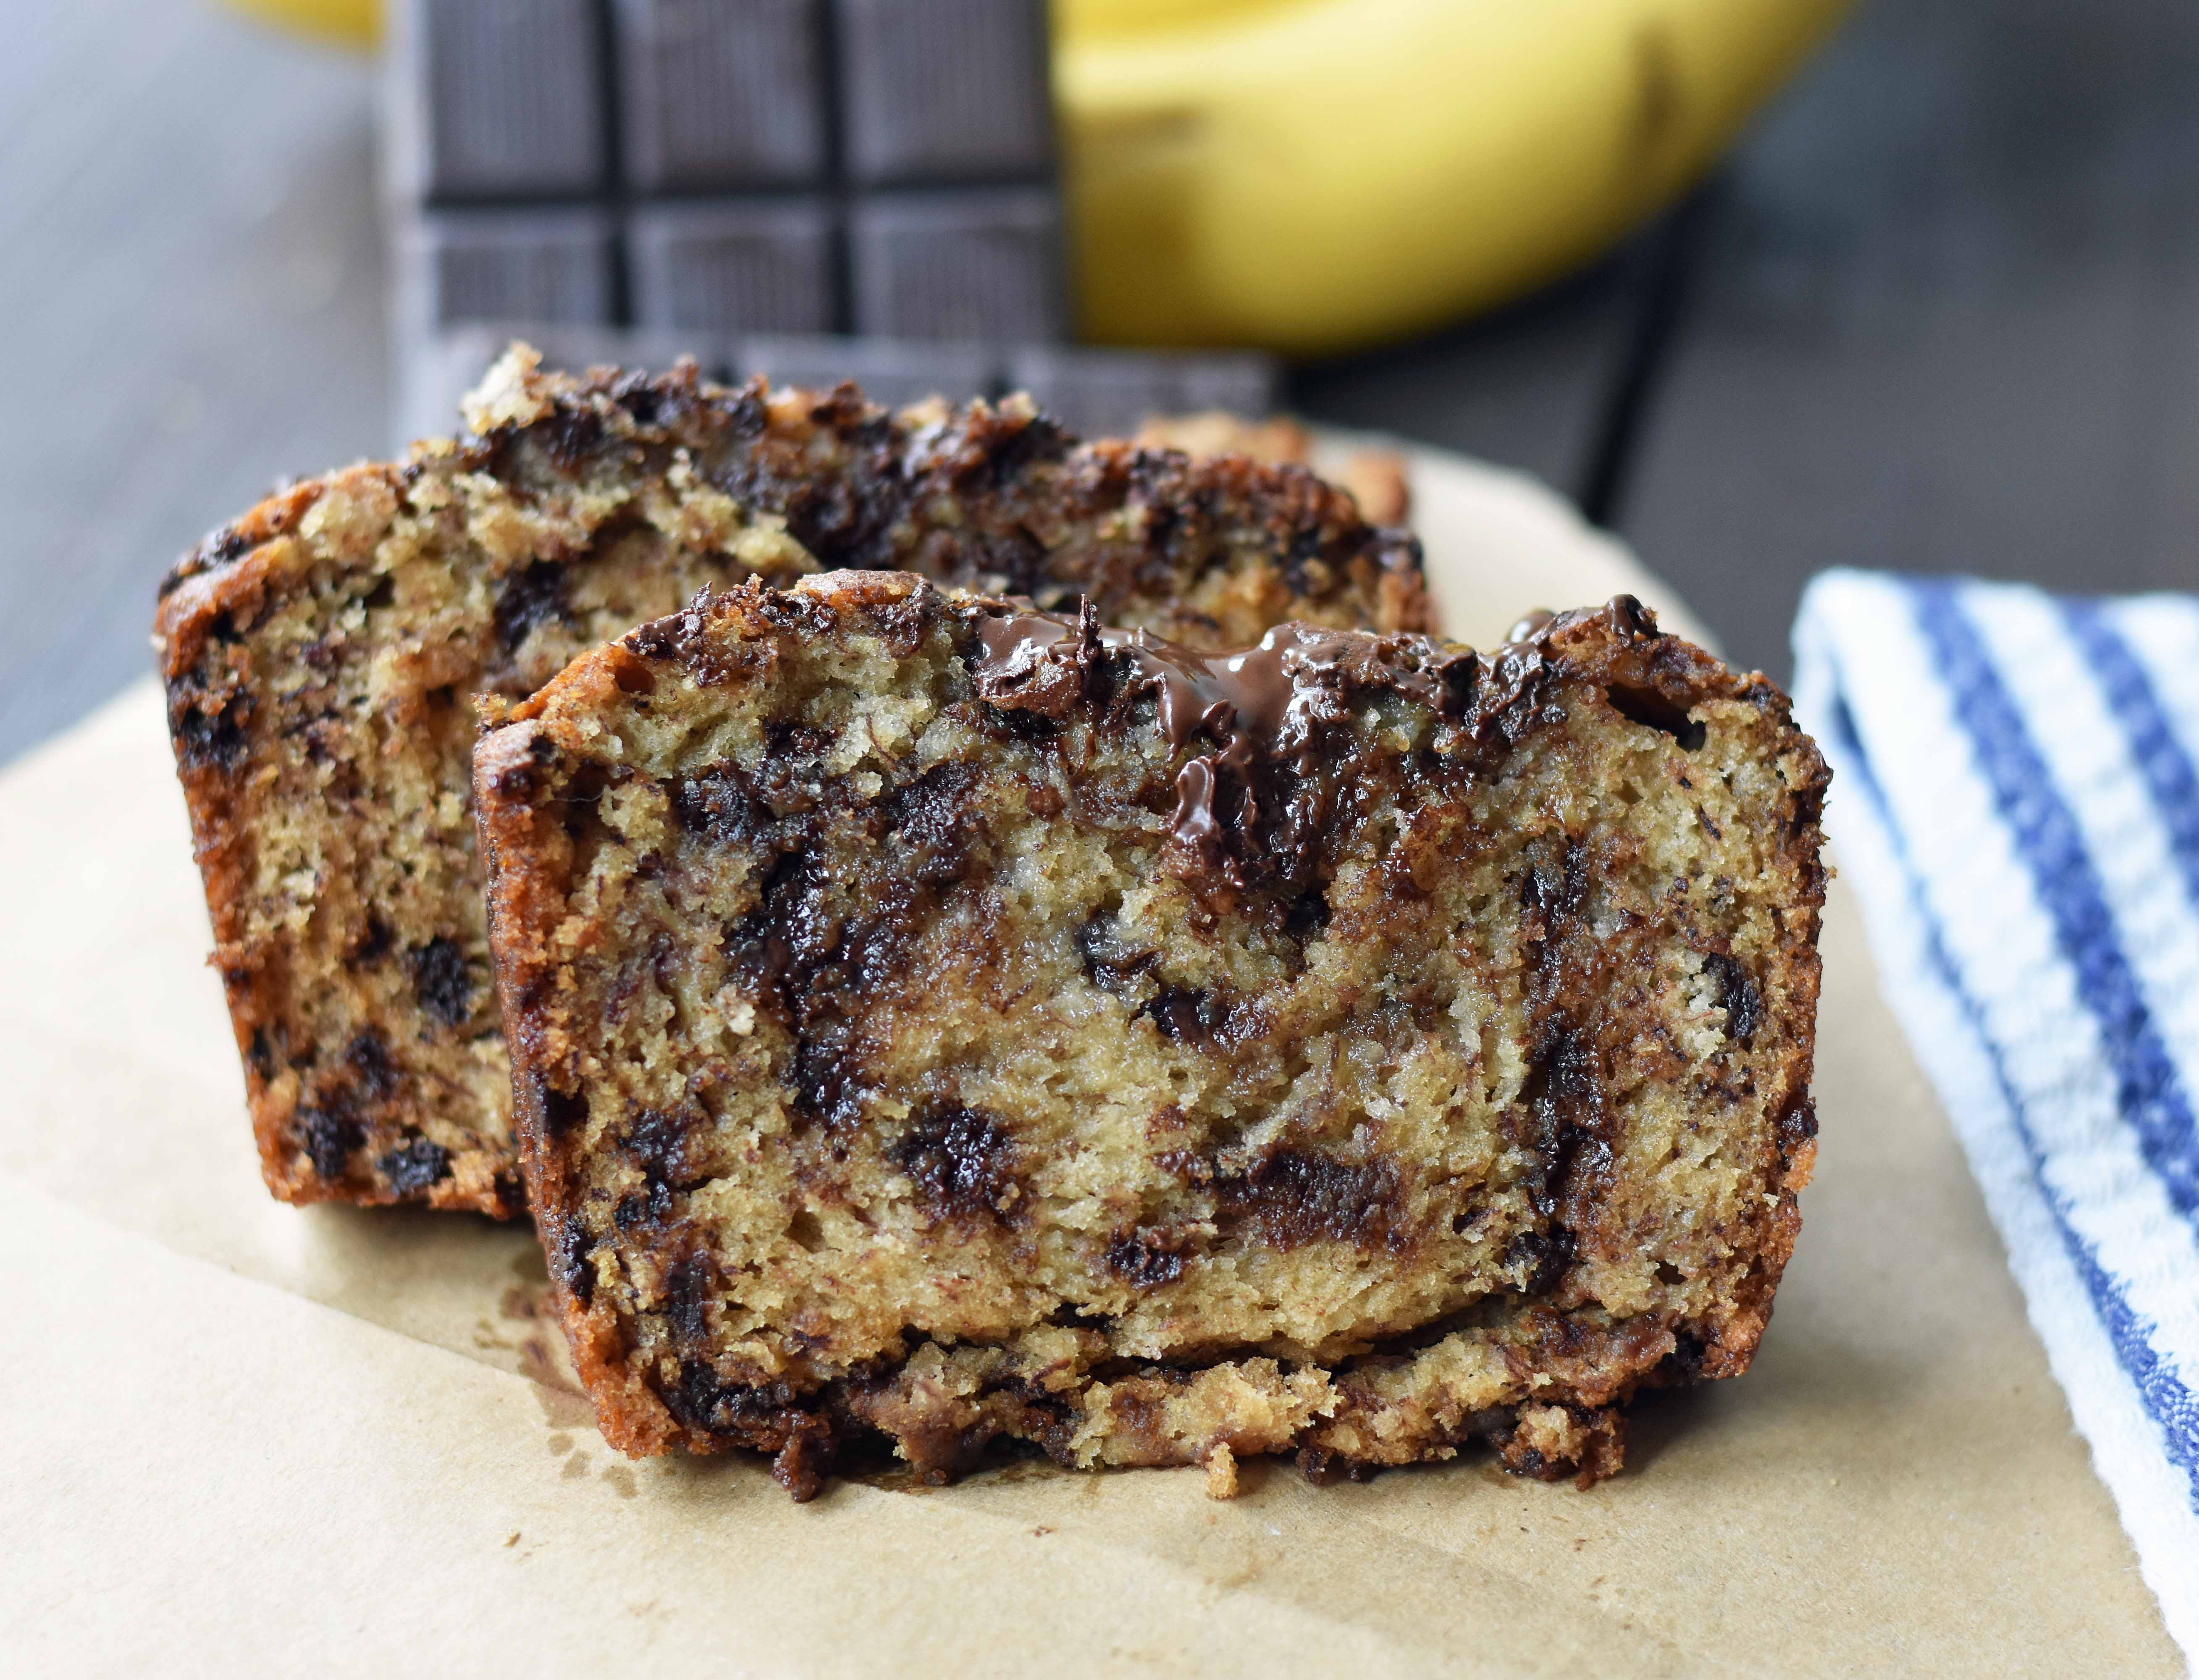 The best ever chocolate chip banana bread. Moist and delicious banana bread with chocolate chips. Banana bread made with butter, oil, and sour cream to create a perfect banana bread. www.modernhoney.com